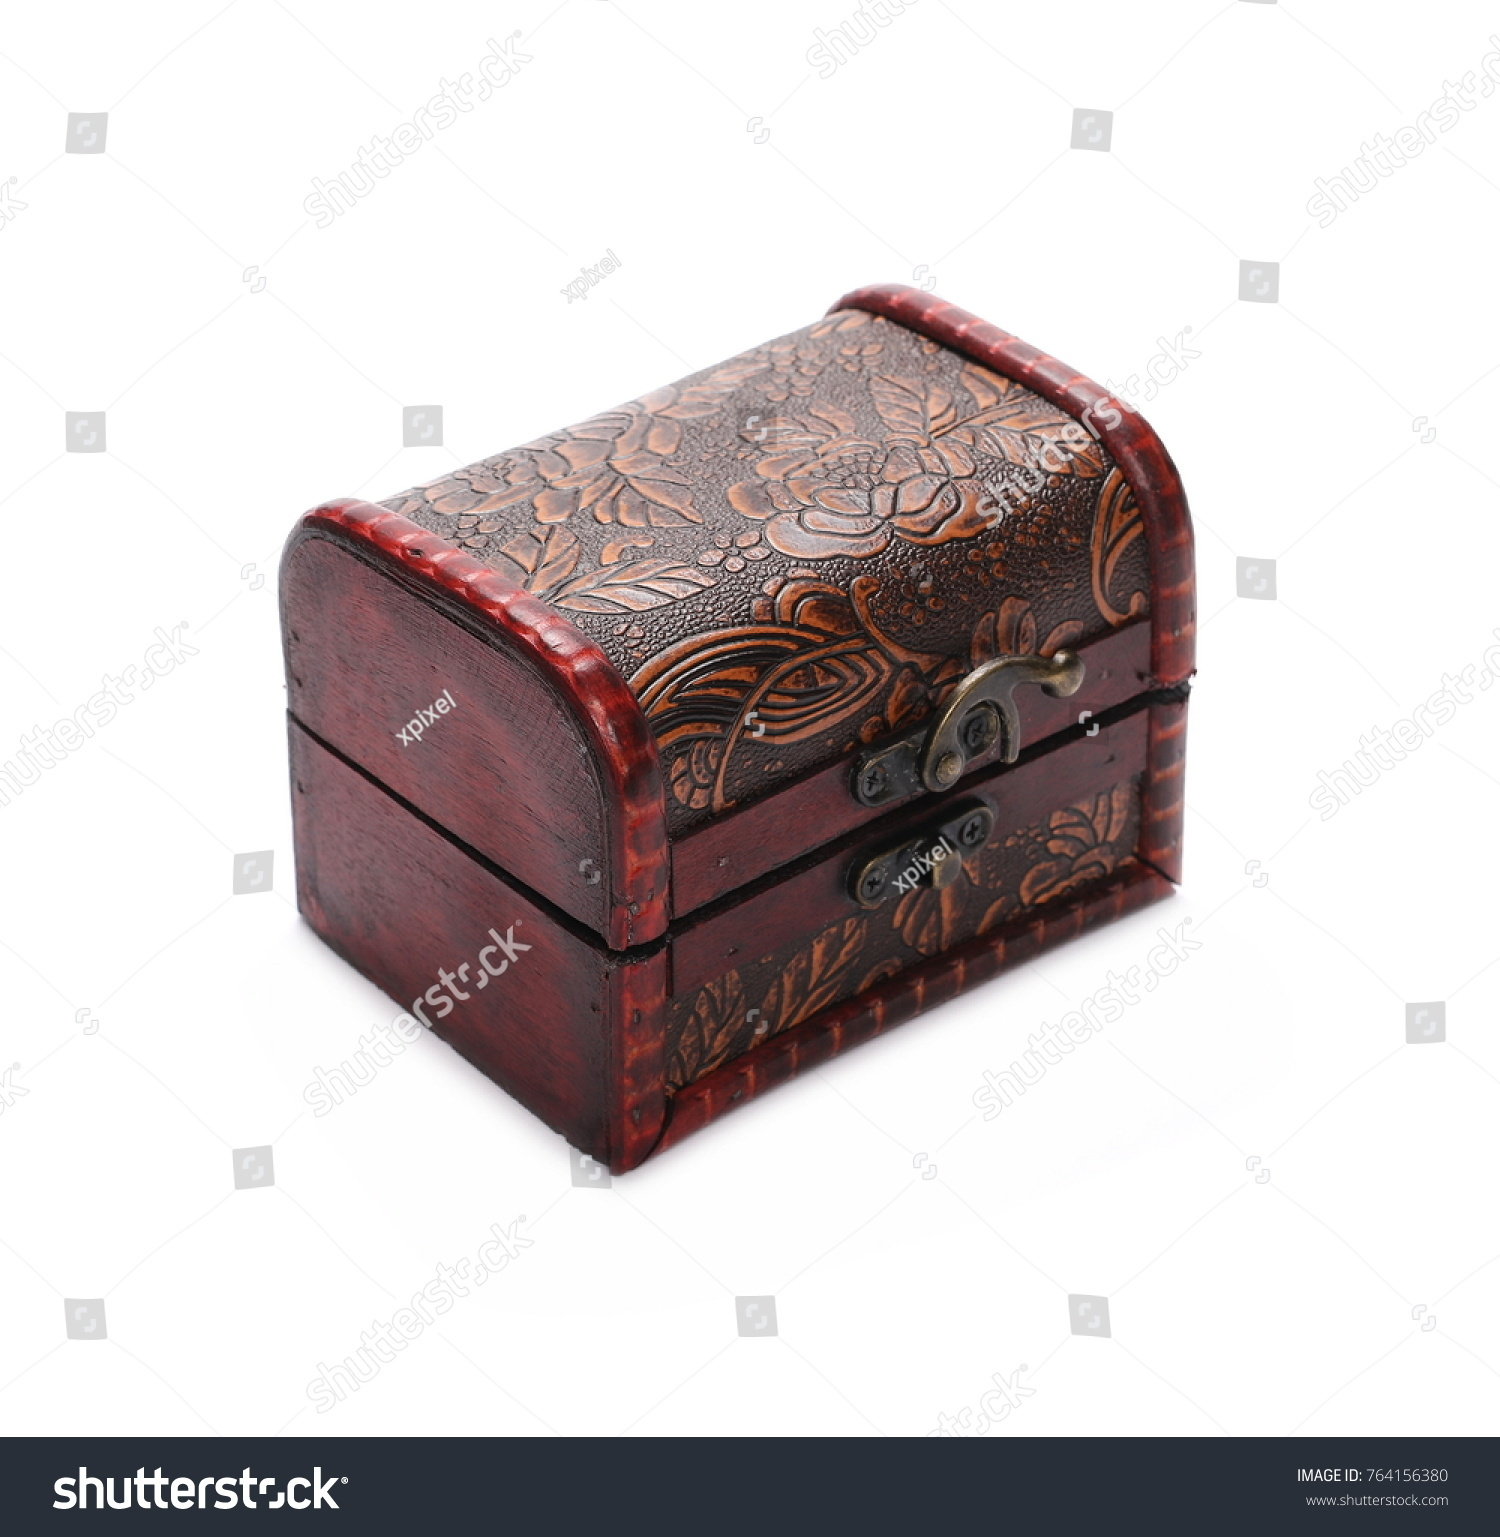 ID 764156380  sc 1 st  EZ Canvas & Wooden jewelry gift box treasure chest isolated on white background ...